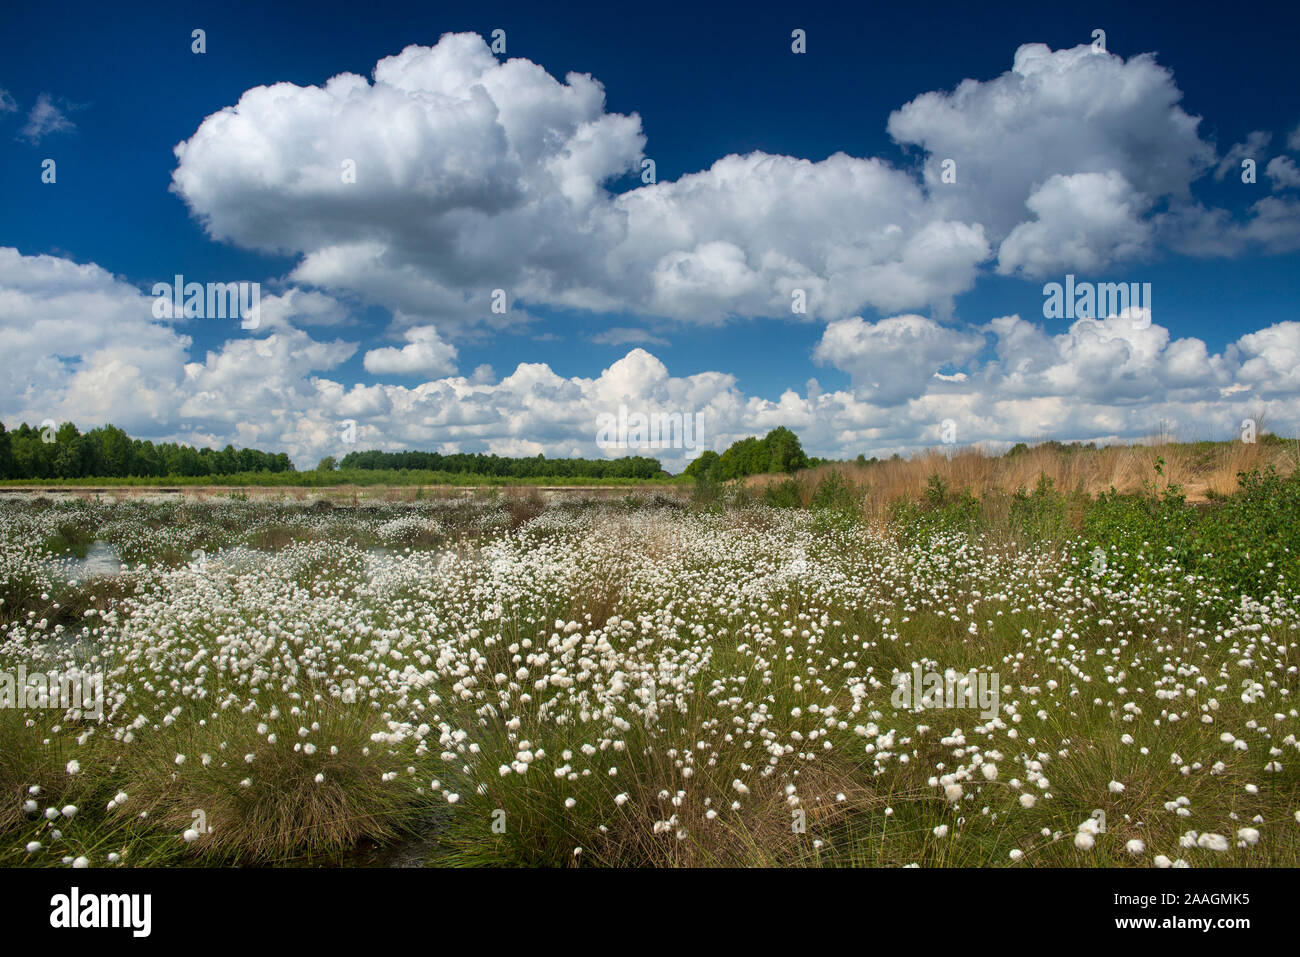 Fruchtstand des Wollgrases Foto Stock